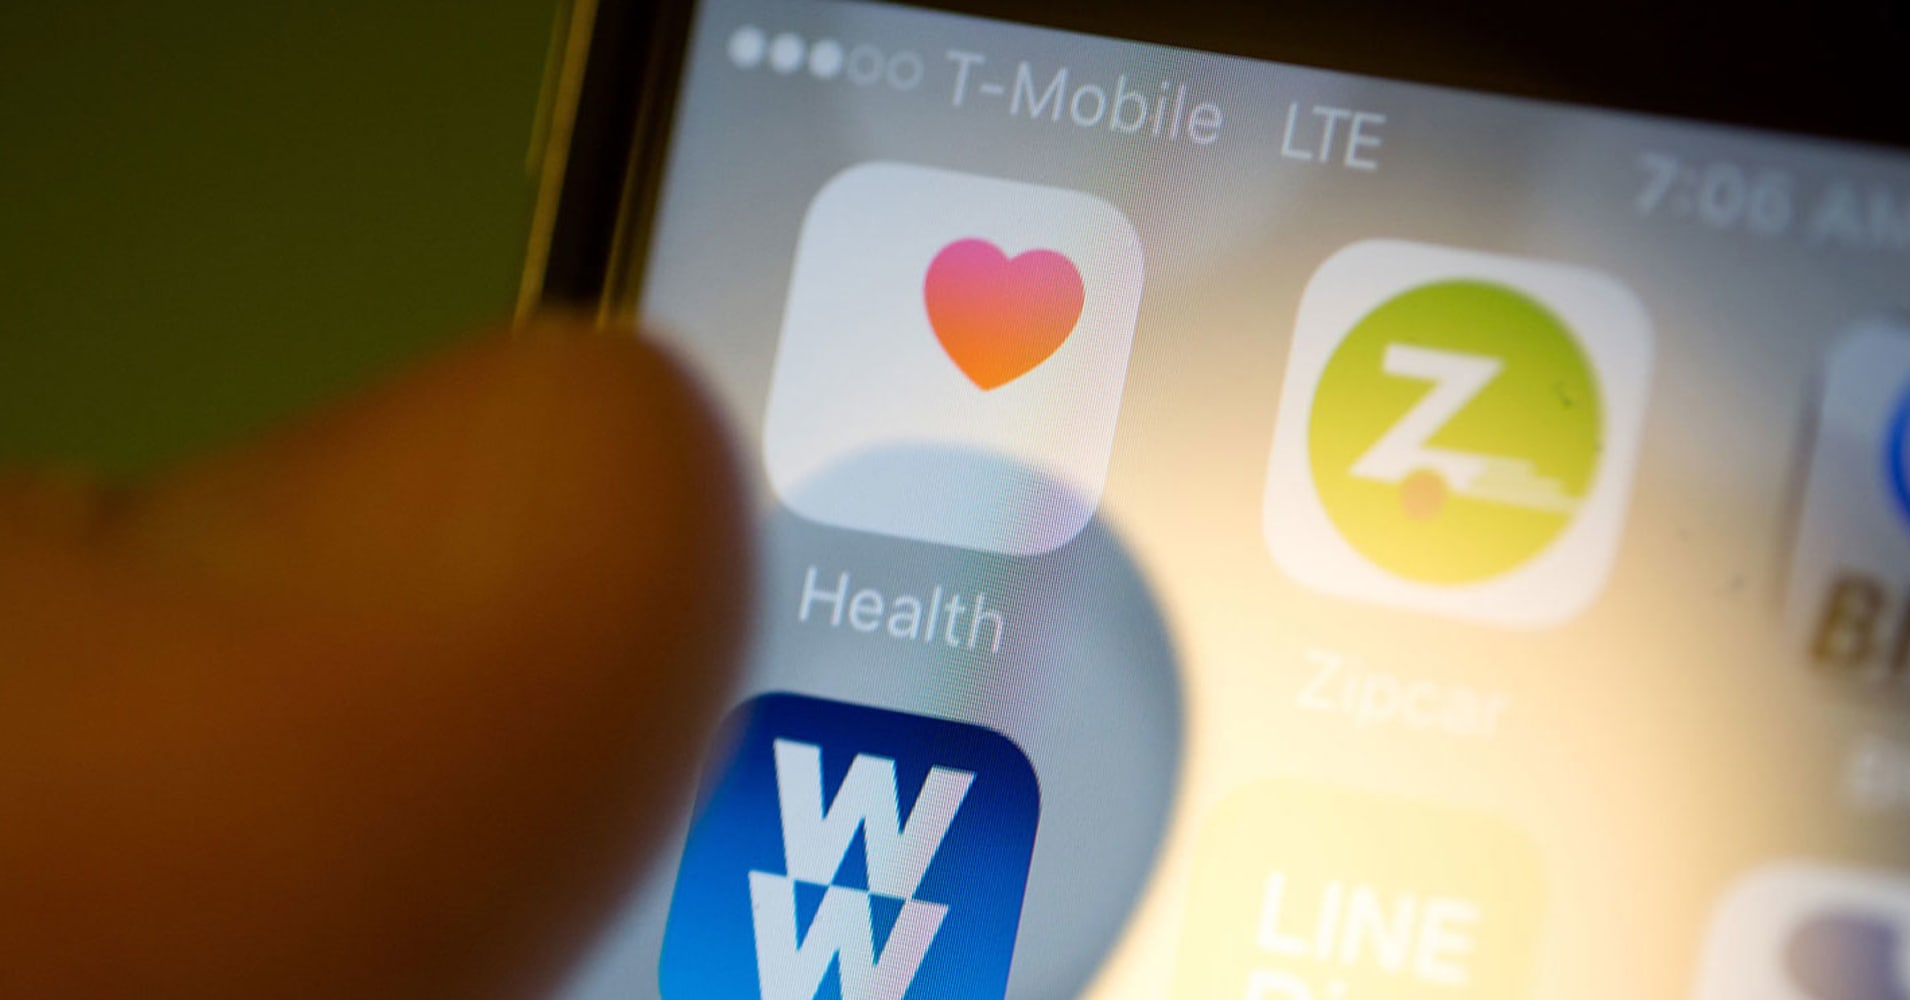 Apple will let you keep your medical records on your iPhone